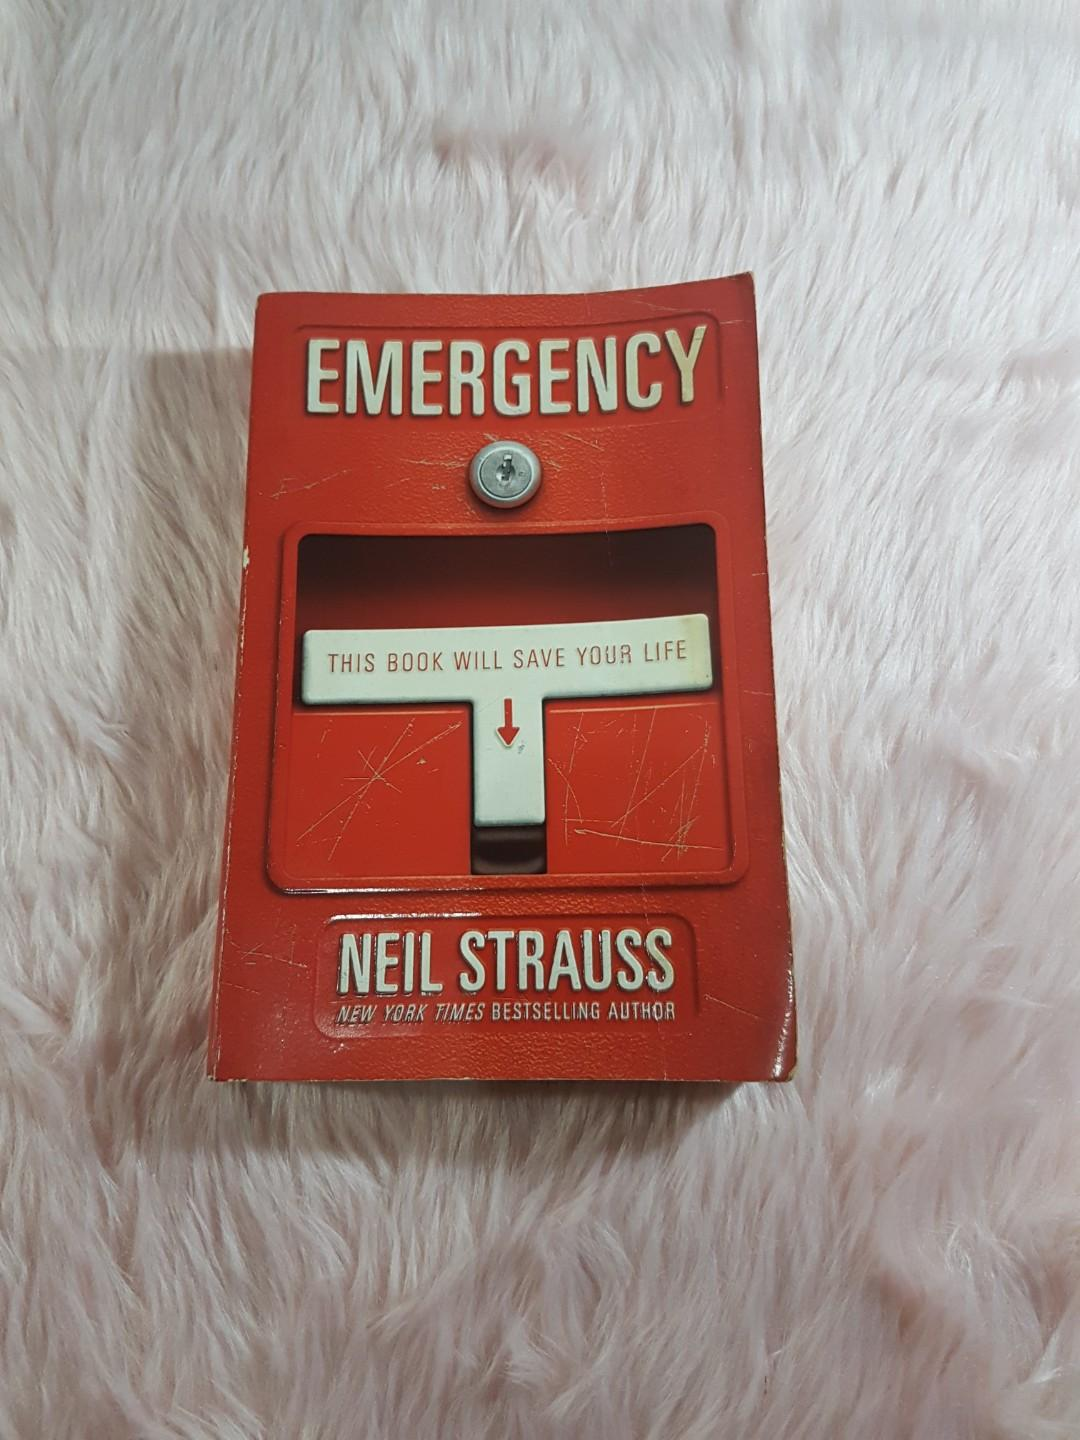 Neil Strauss - Emergency: This Book Will Save Your Life